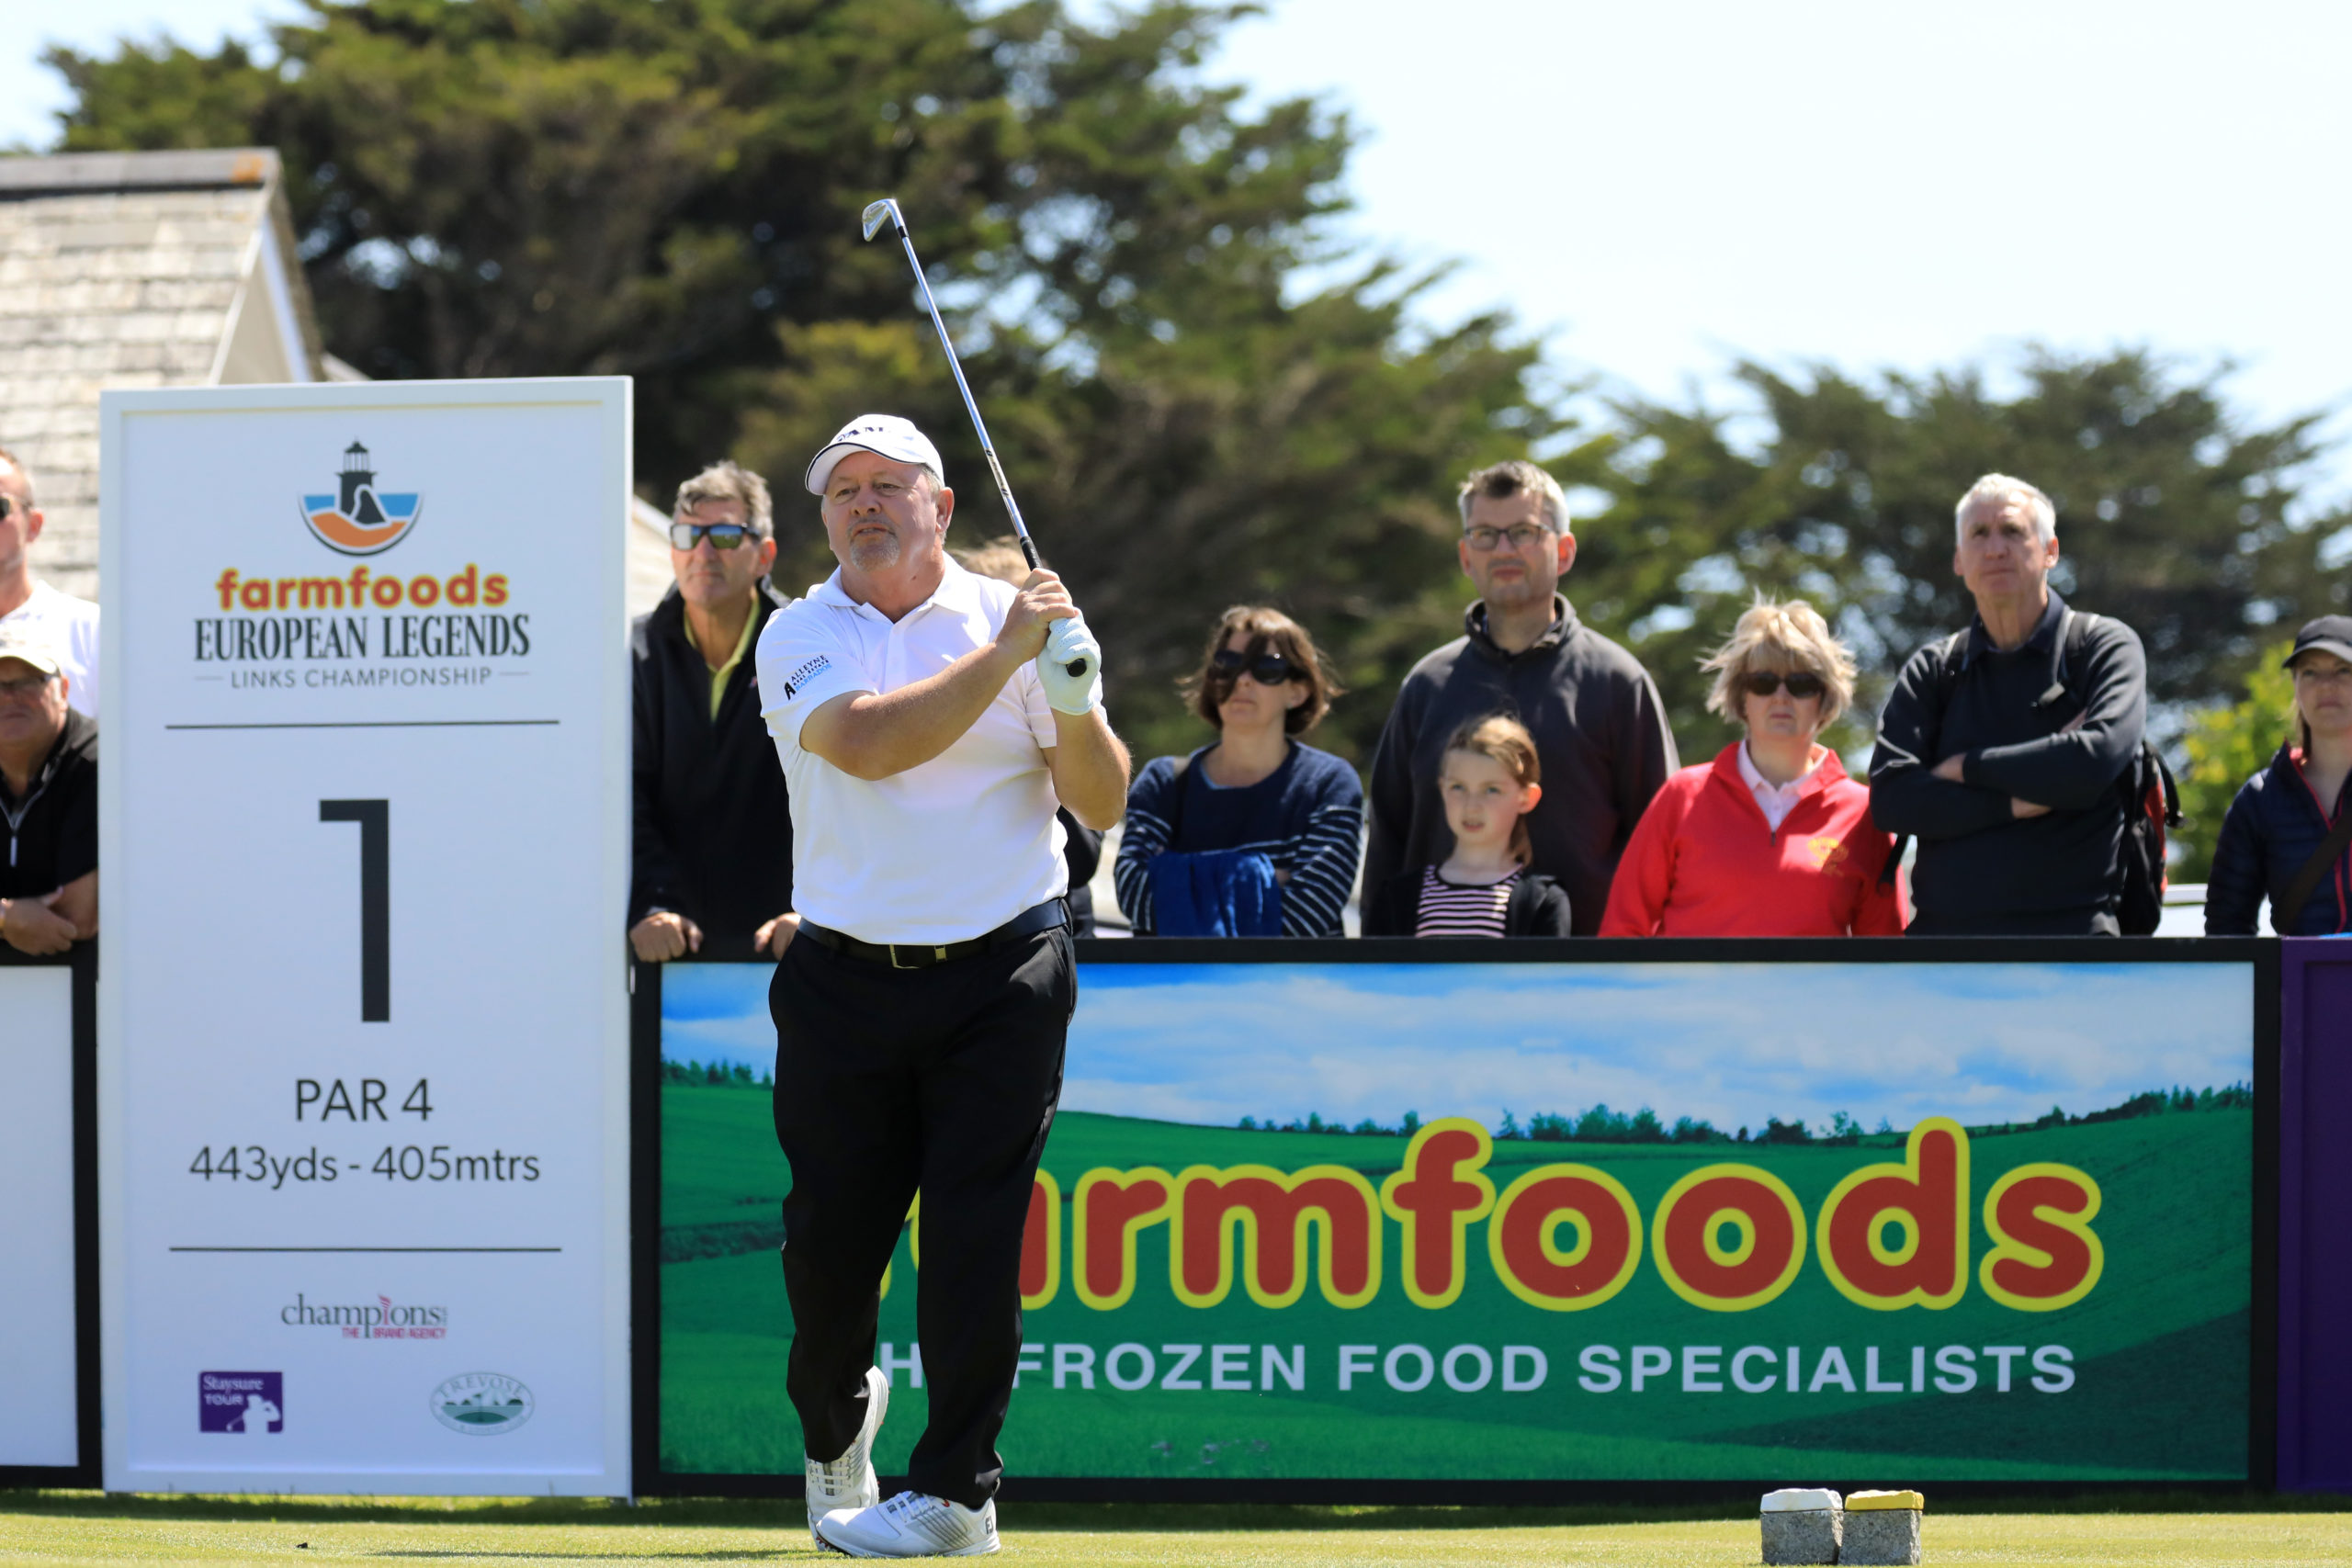 2019 Farmfoods European Legends Links Championship – Day Two